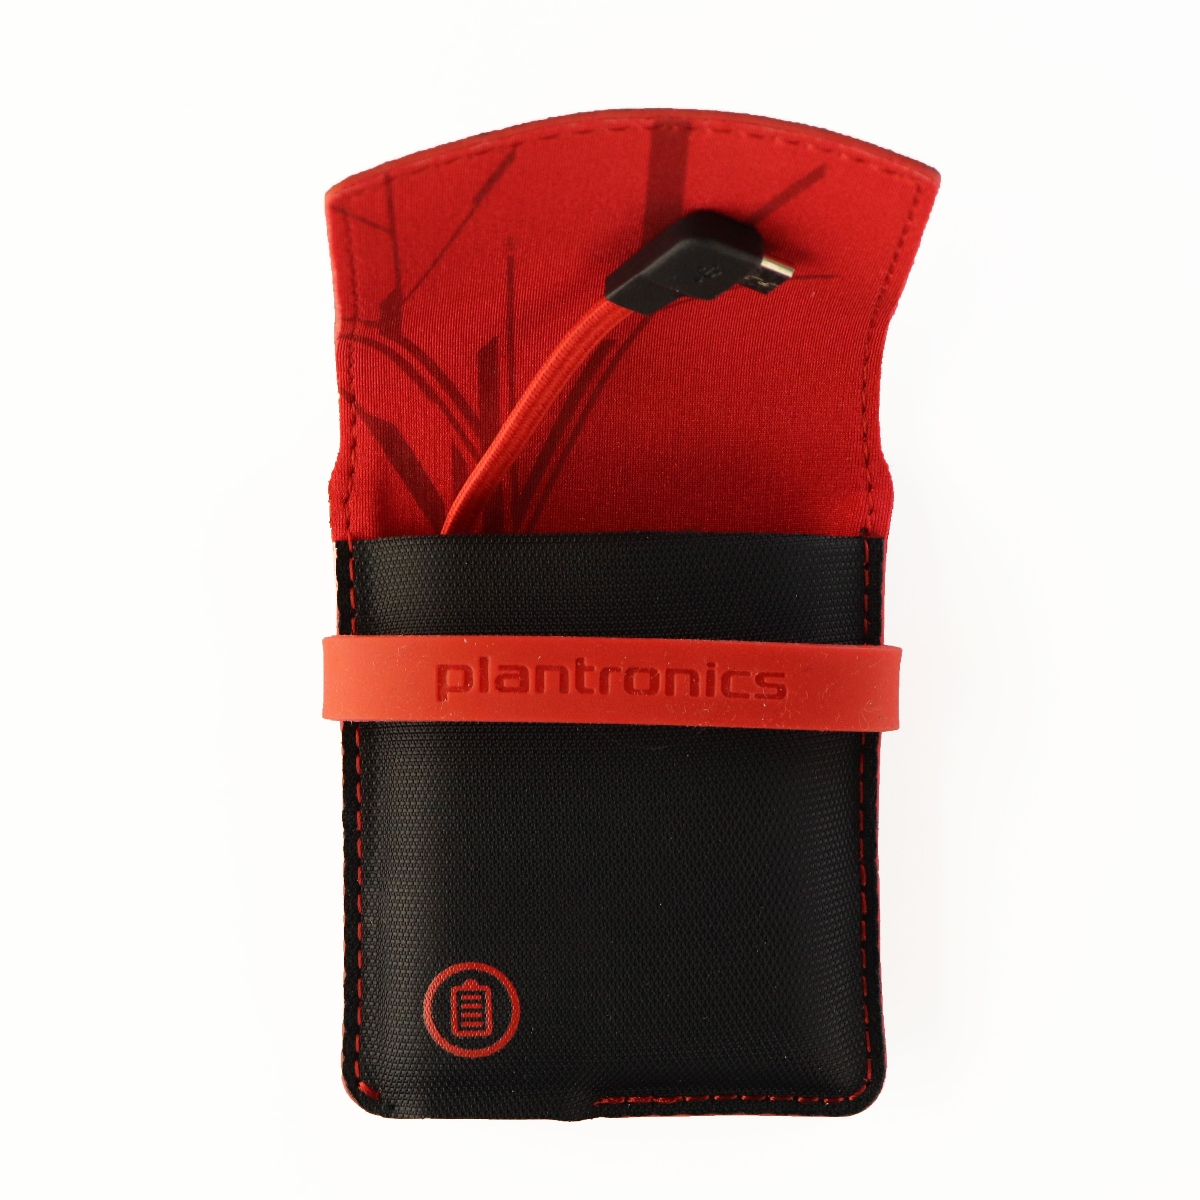 Plantronics Backbeat GO / GO 2 Charging Case Cover - Black / Red 200864-11